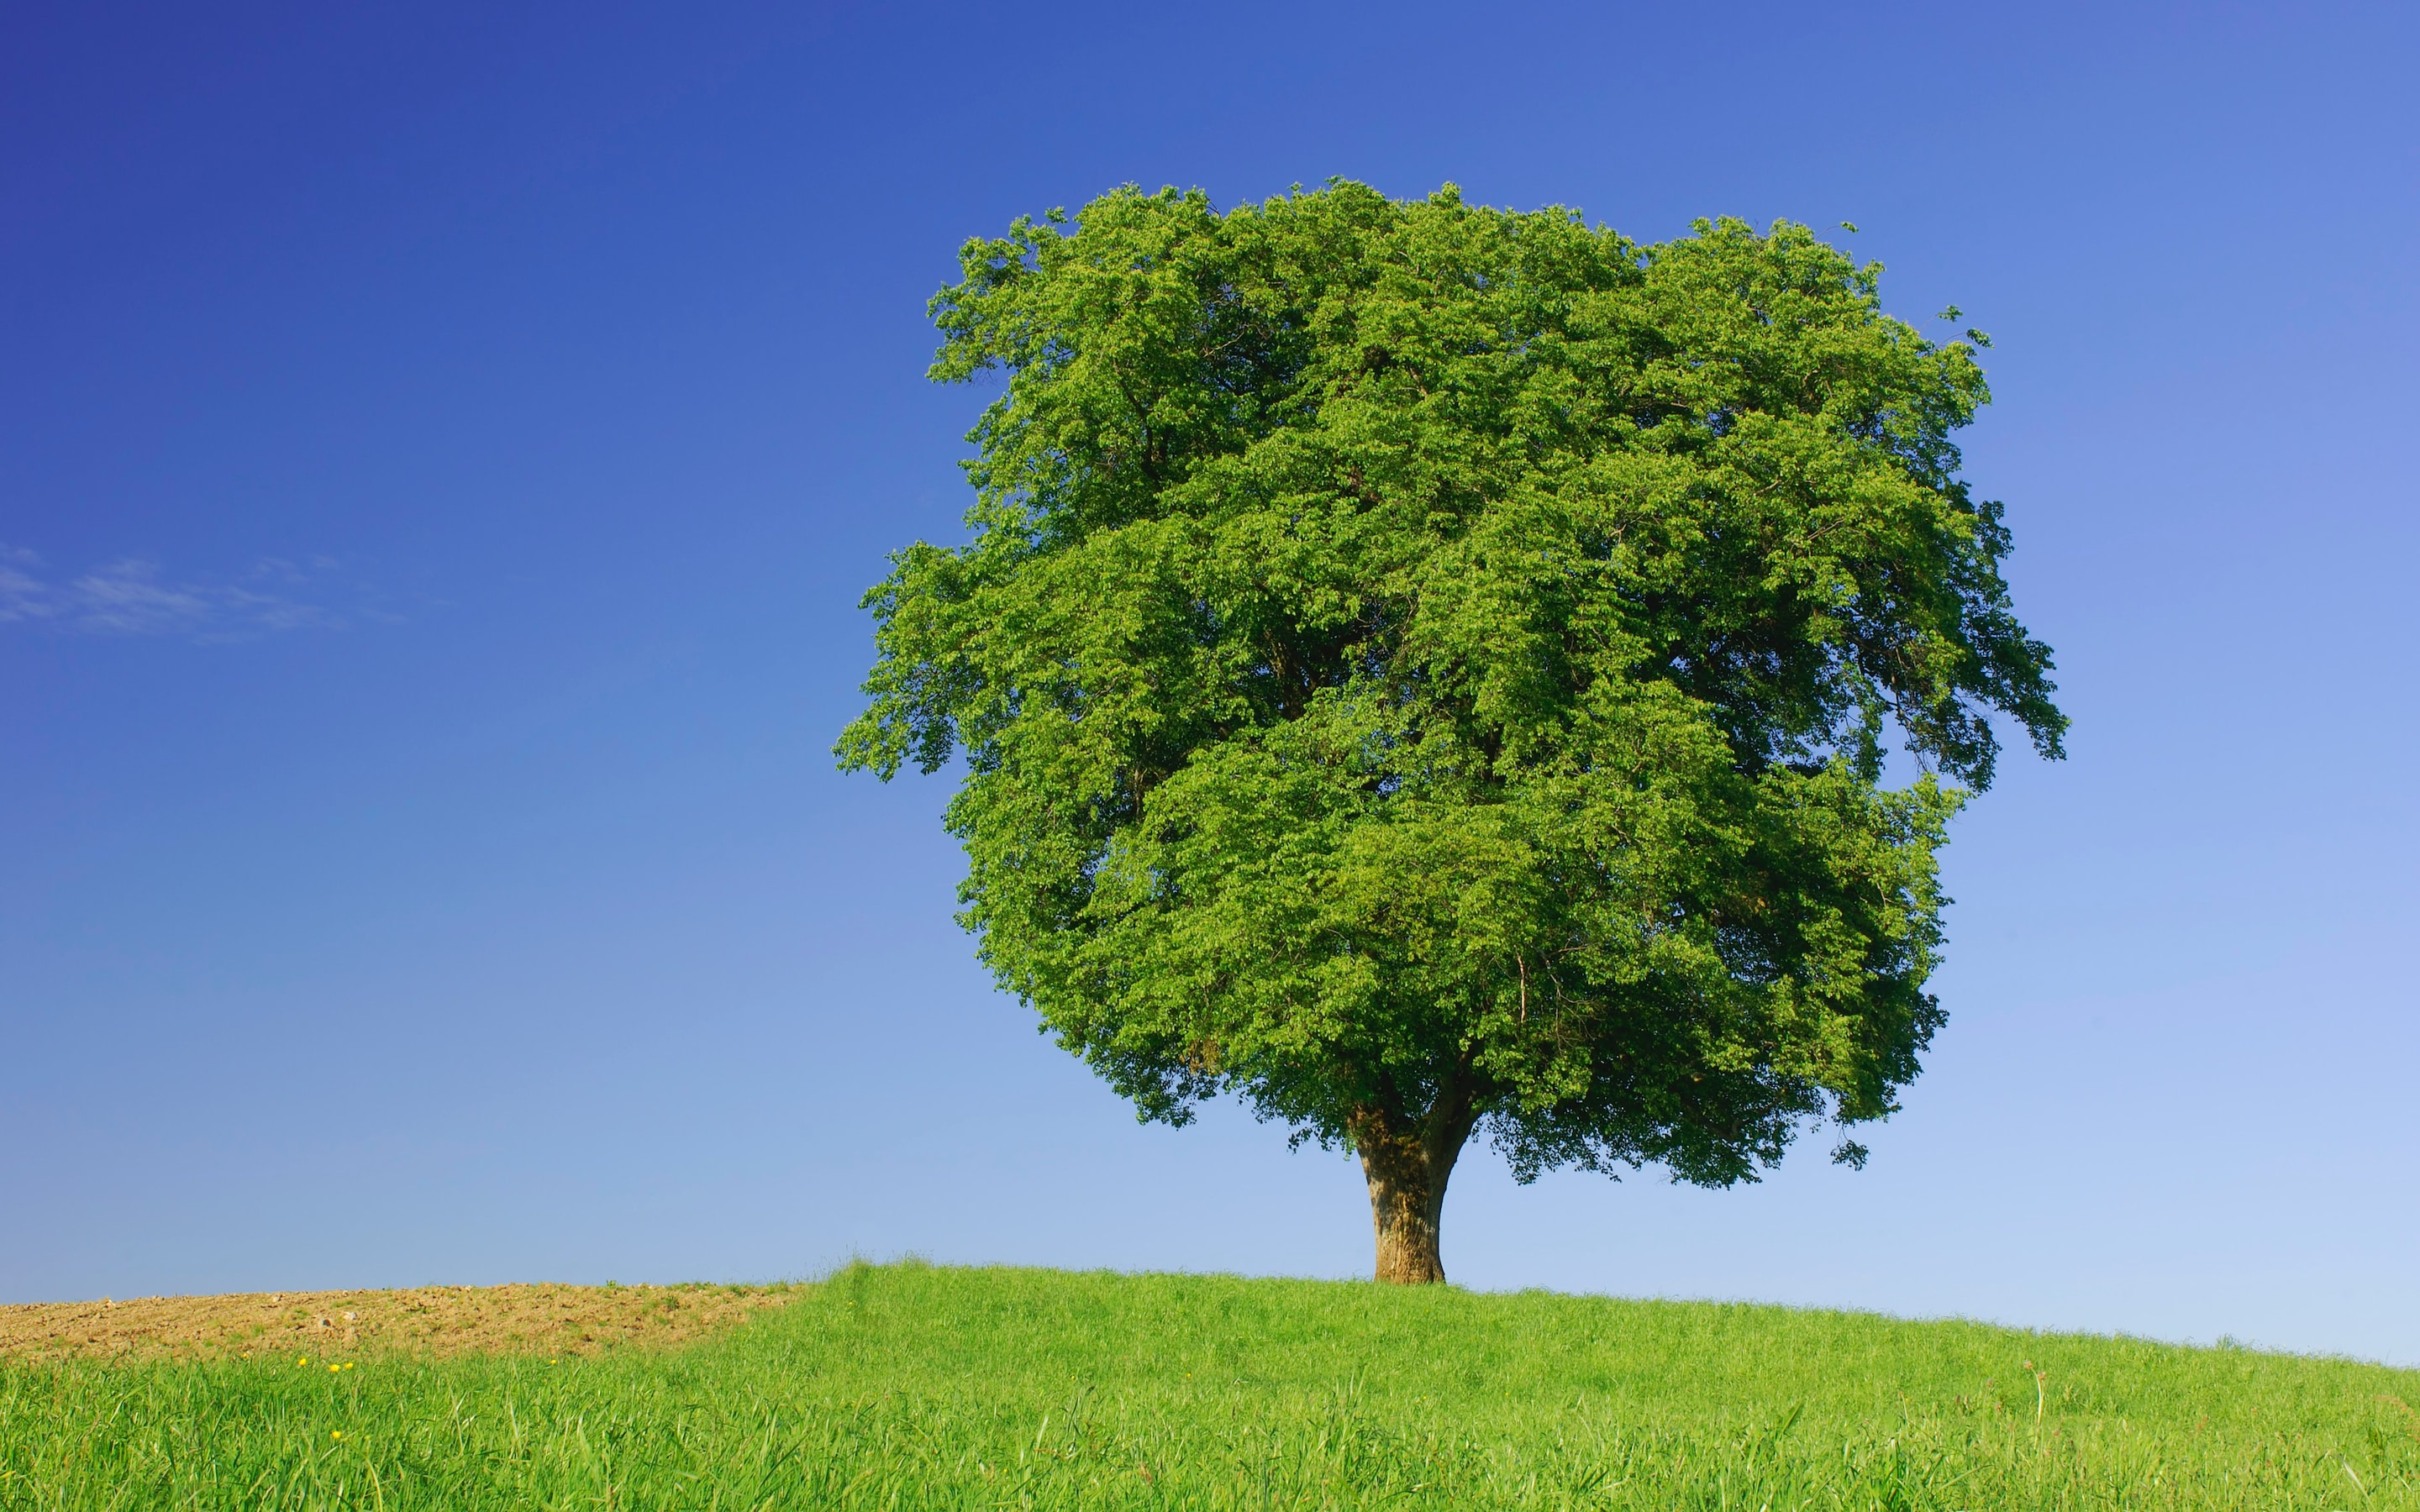 Do Trees Have Feelings Too One Expert Says They Do